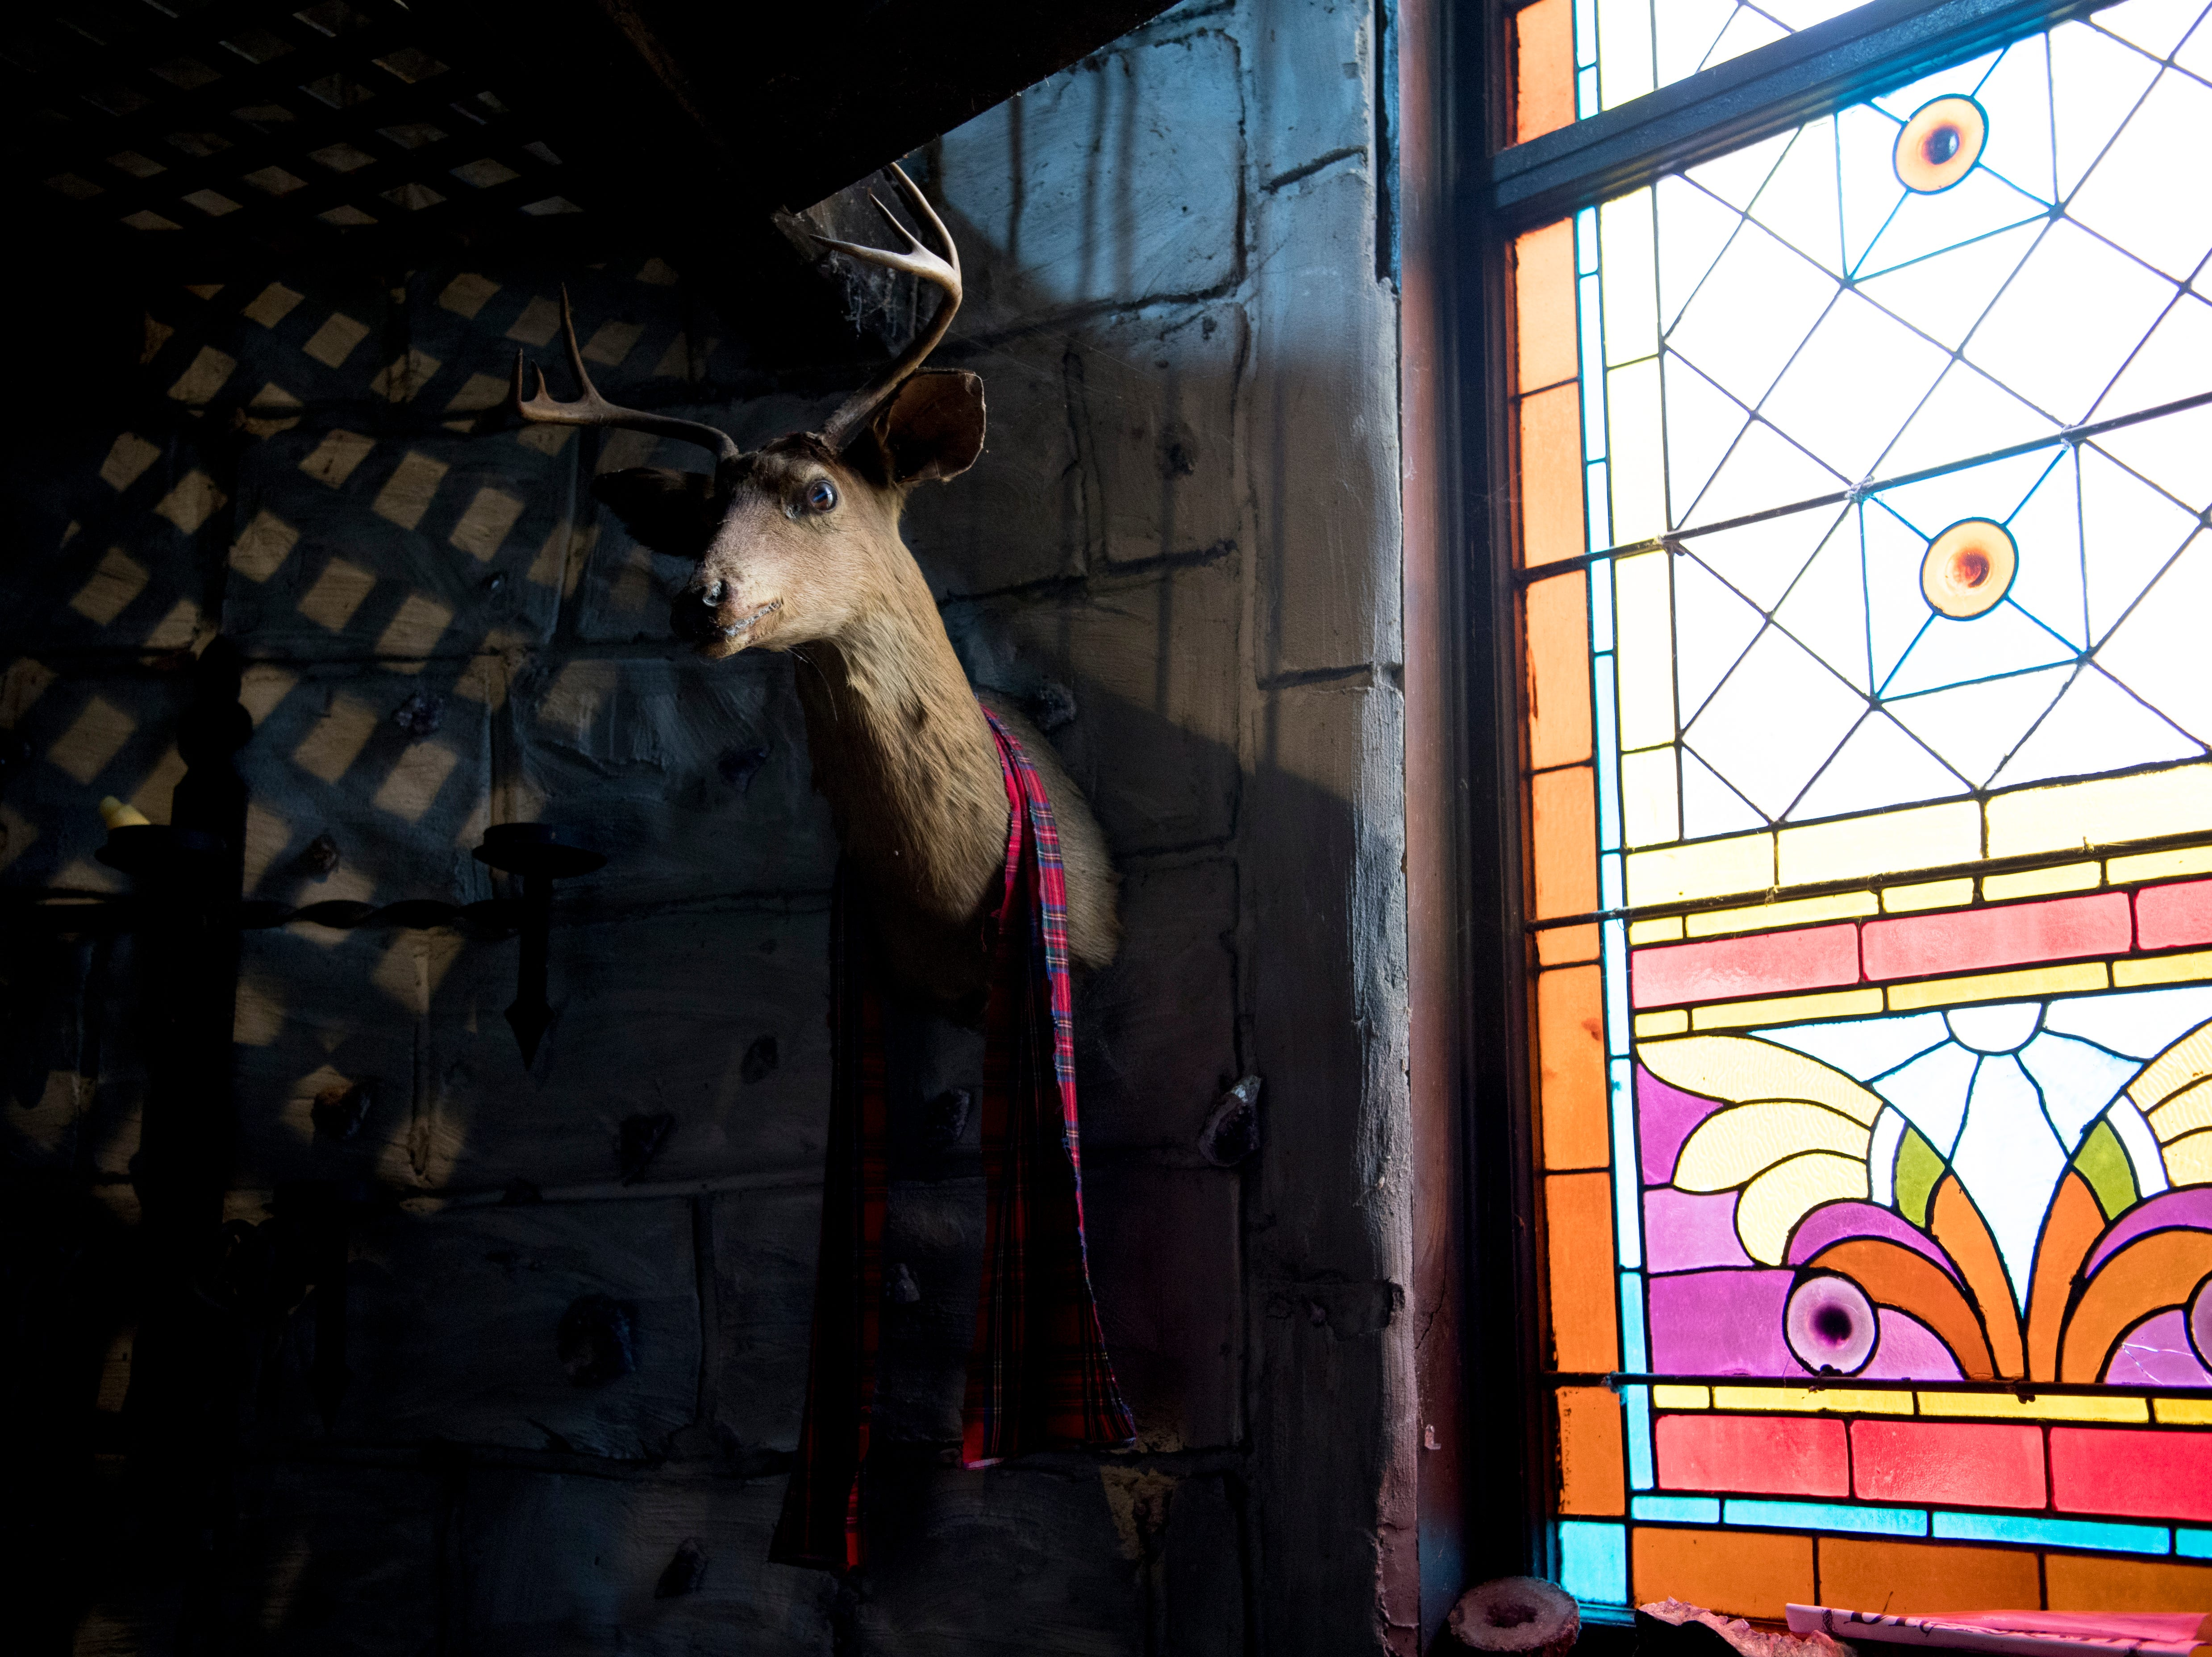 A deer bust hangs on the wall of the dungeon inside Williamswood Castle in South Knoxville, Tennessee on Thursday, January 17, 2019. The home, modeled after a medieval castle, was built by Julia Tucker in 1991 and took 6 years to complete. Many of the items in the home were sourced from around the Knoxville area.